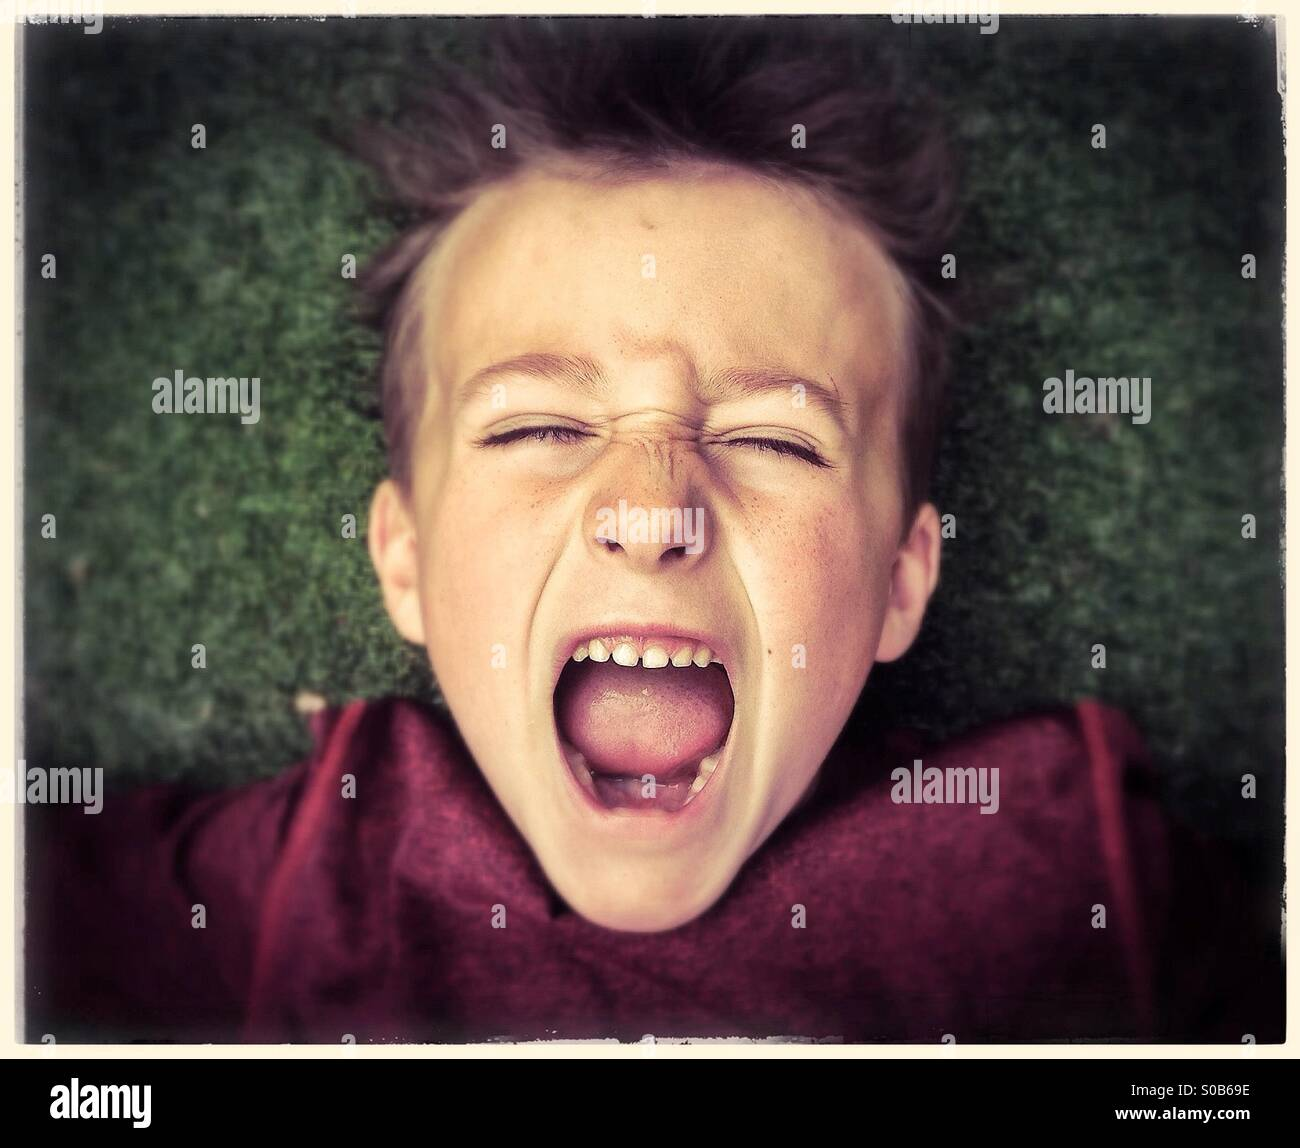 Clouse up of a boy, screaming loudly with eyes closed. Boy excited and happy Stock Photo